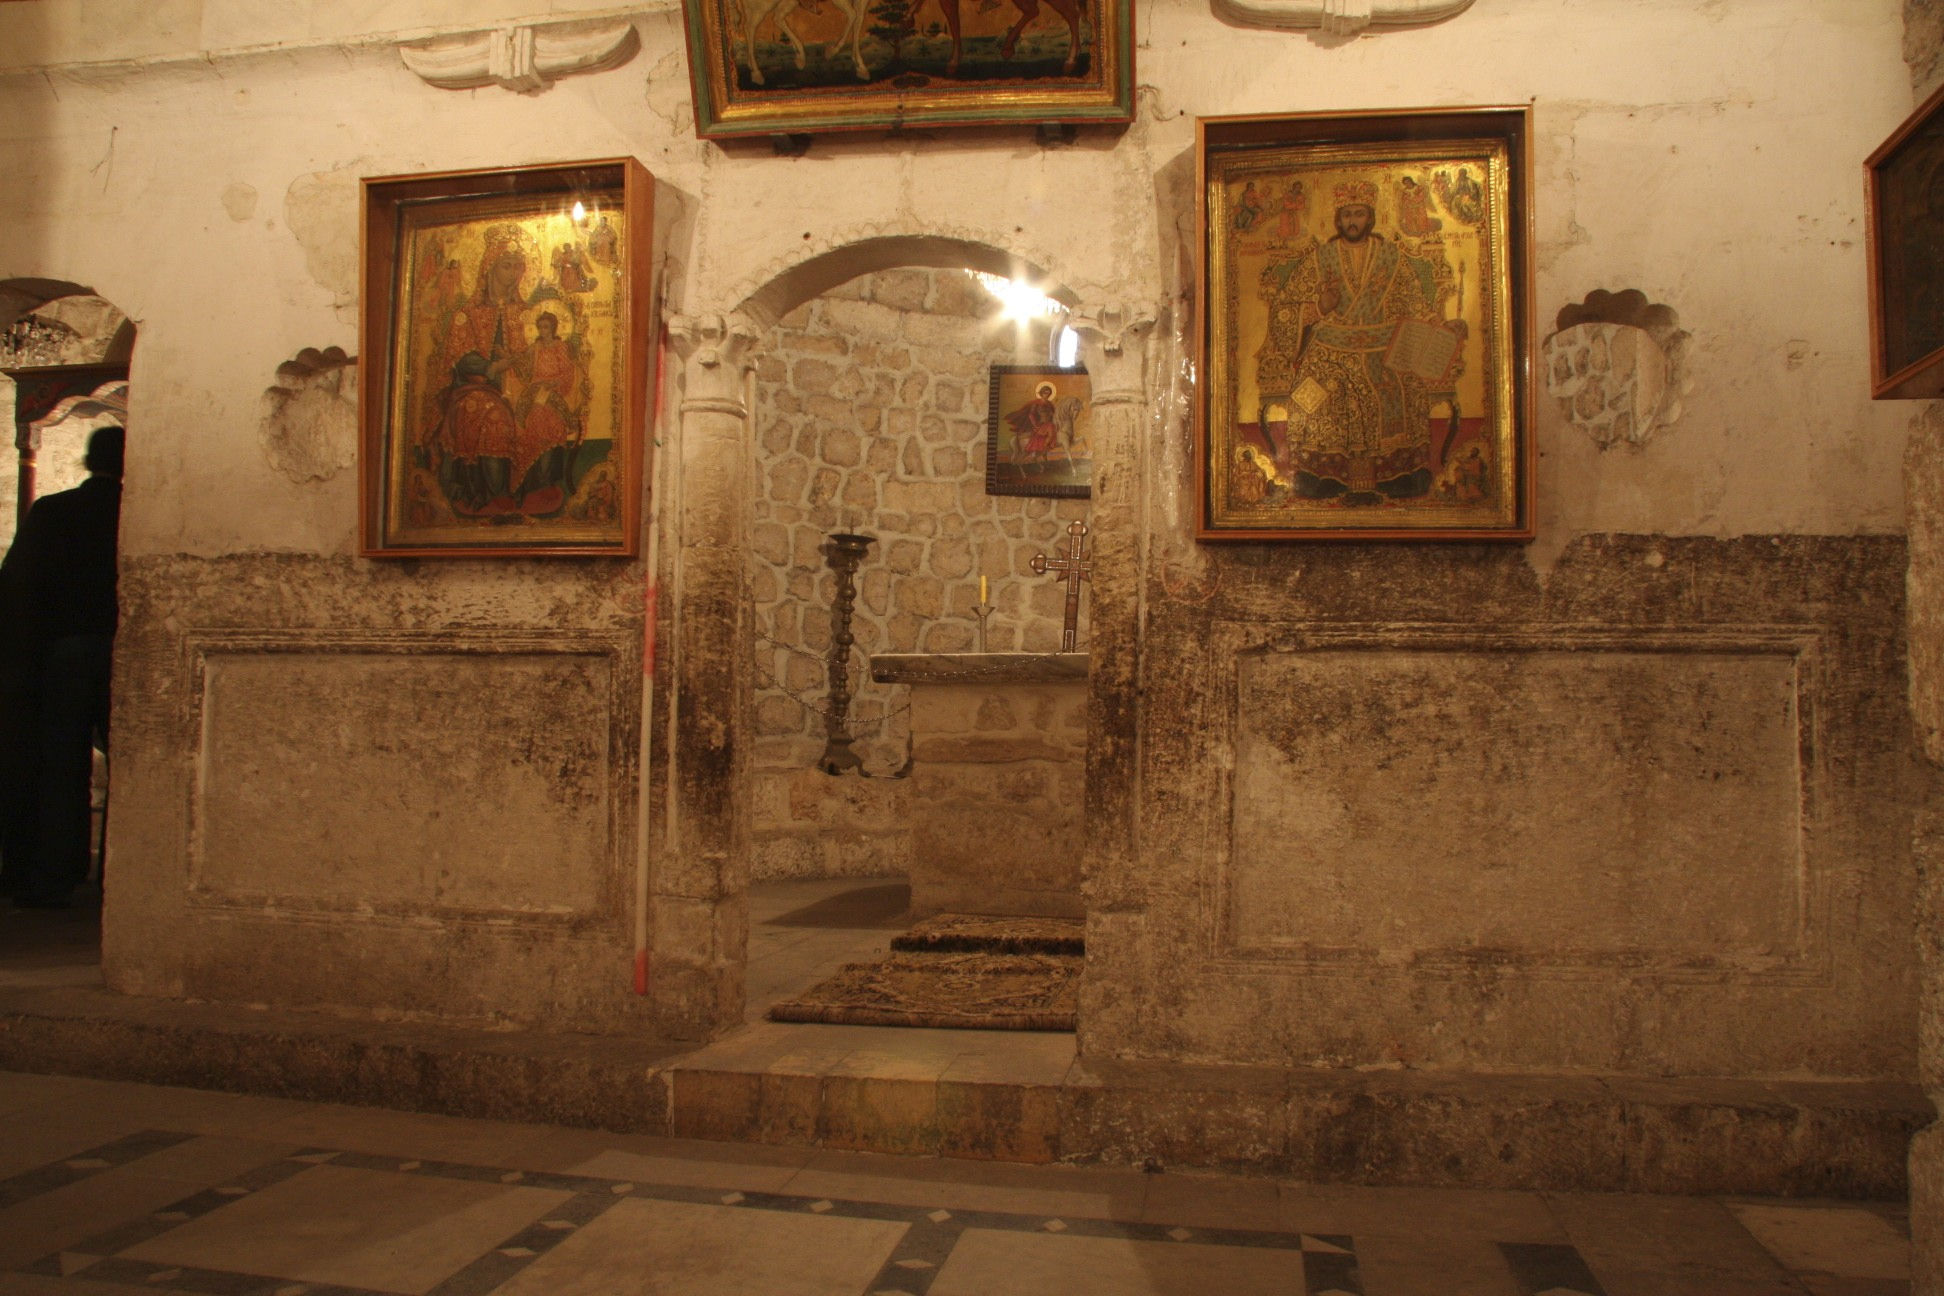 Some of the oldest Christian churches in the world are in Syria.  Some were built during the times of the apostles.